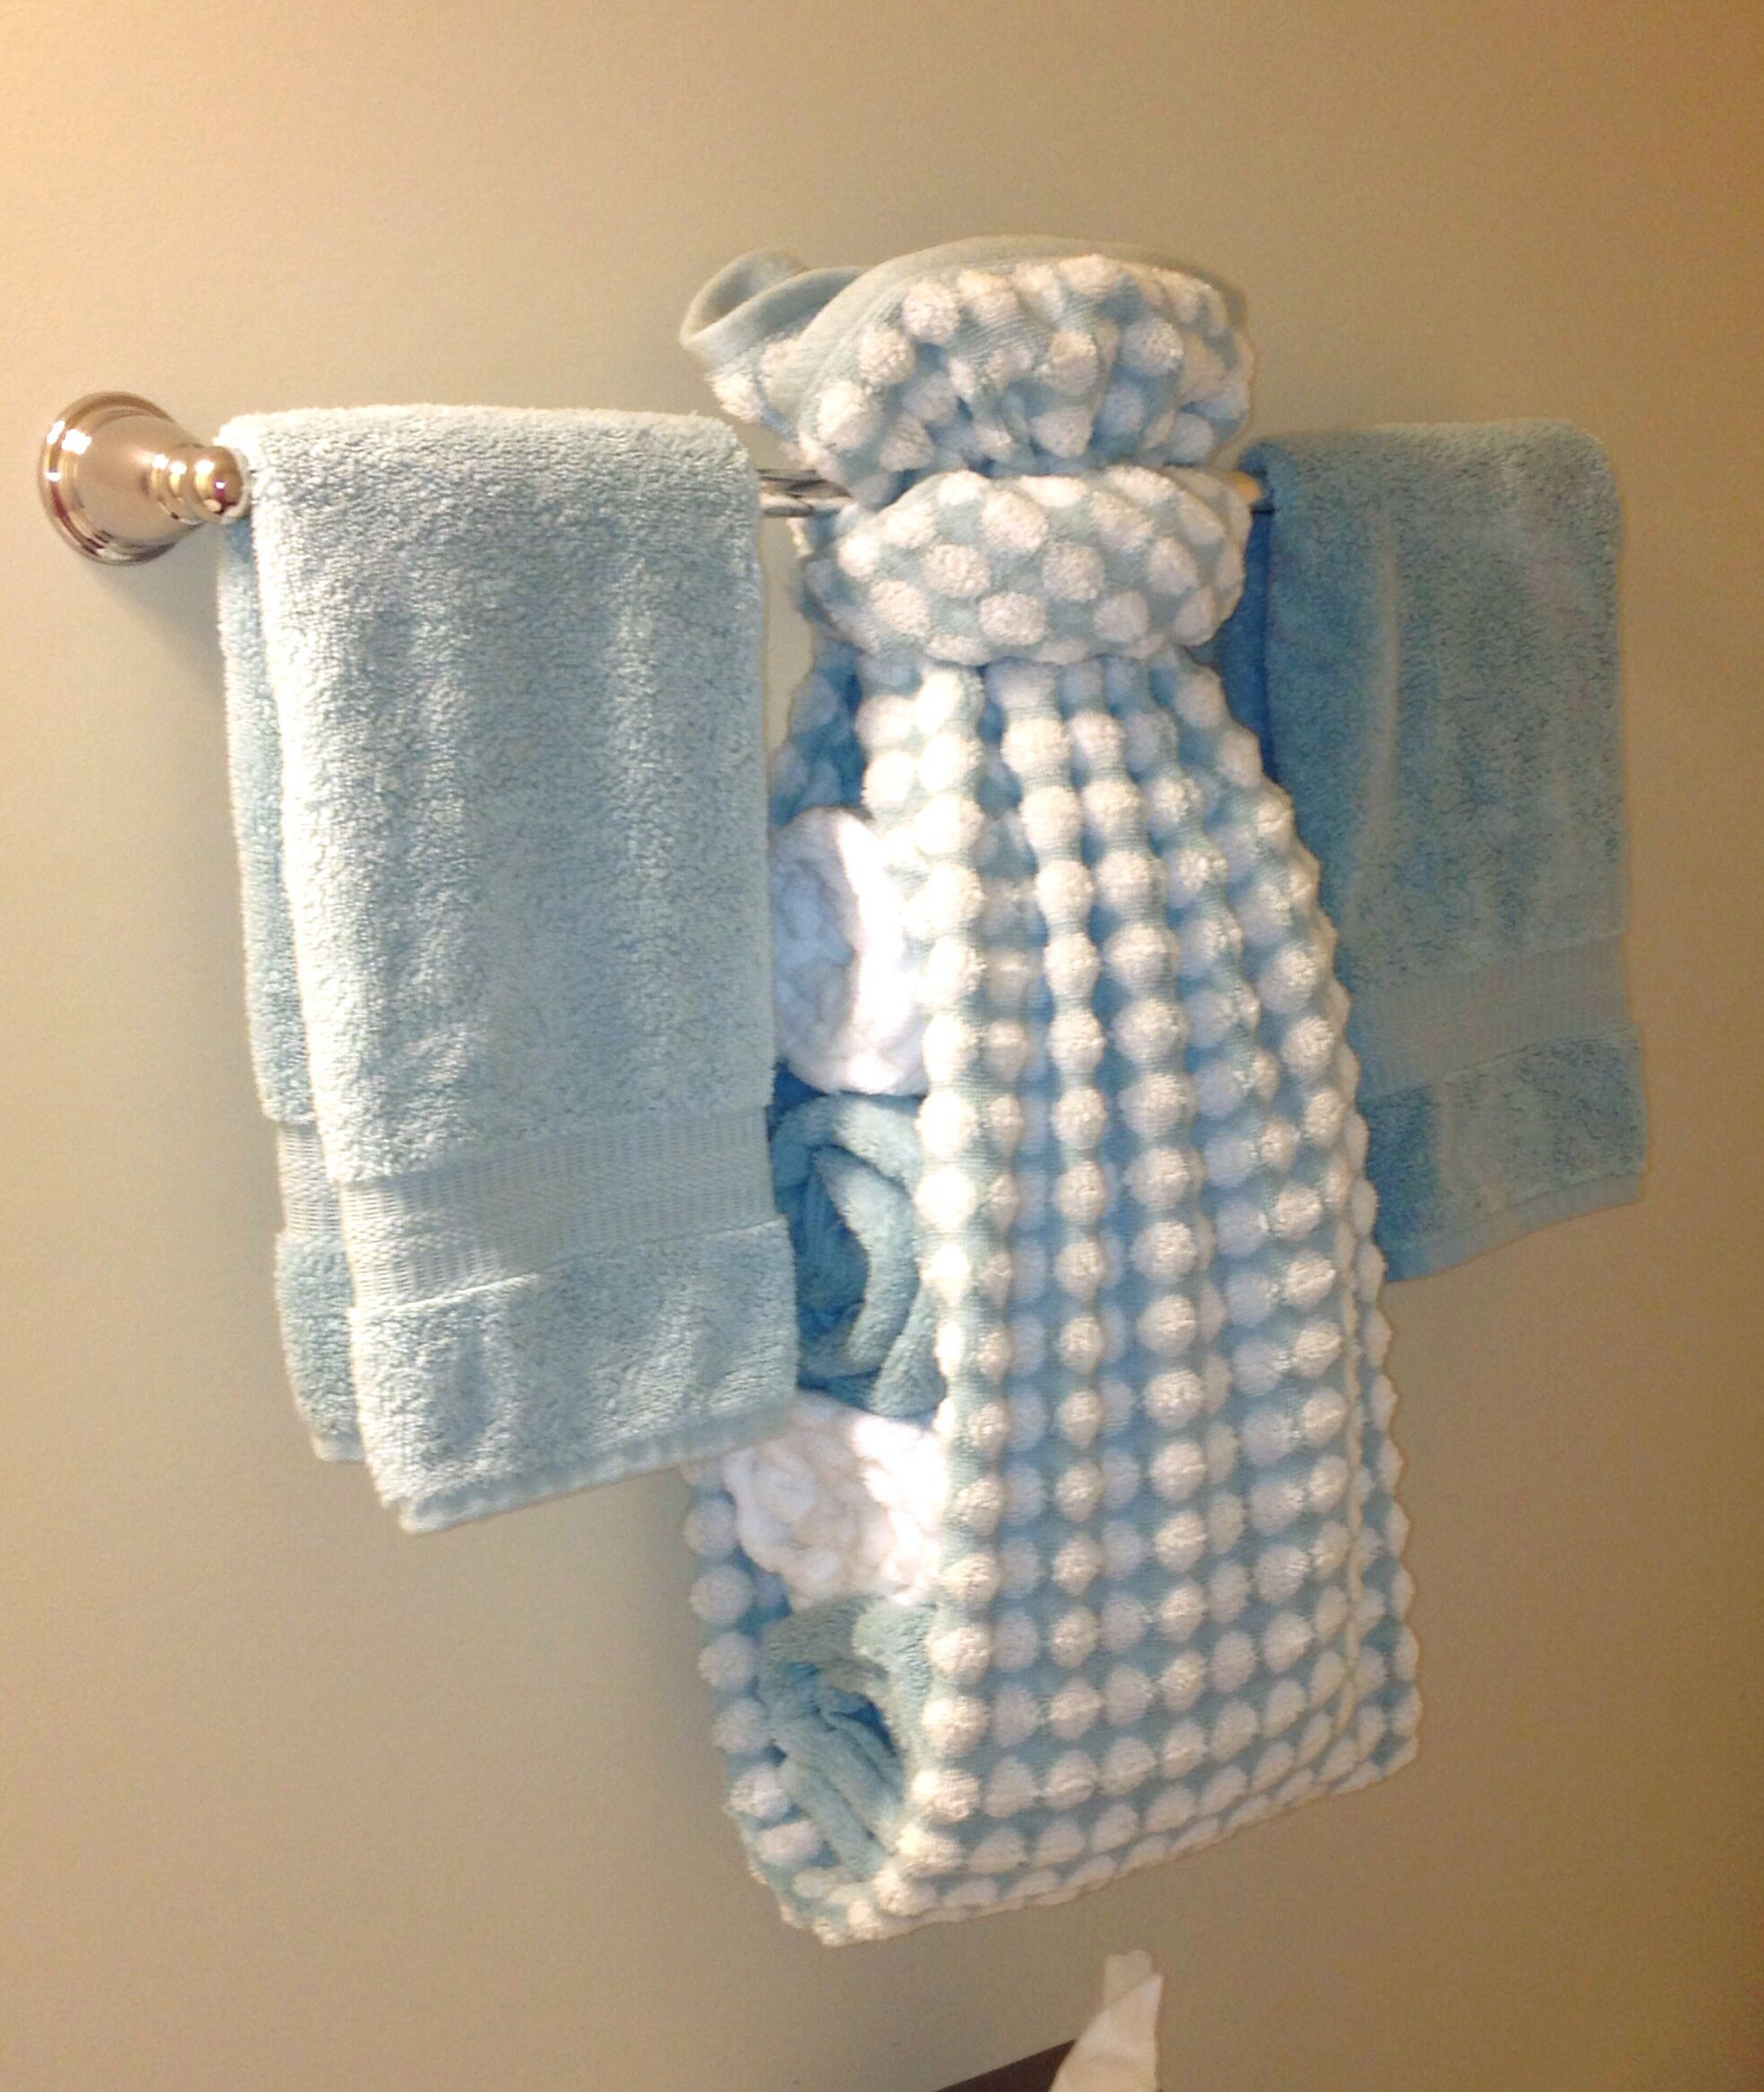 Captivating Hand Towel Display For Guest Bath More